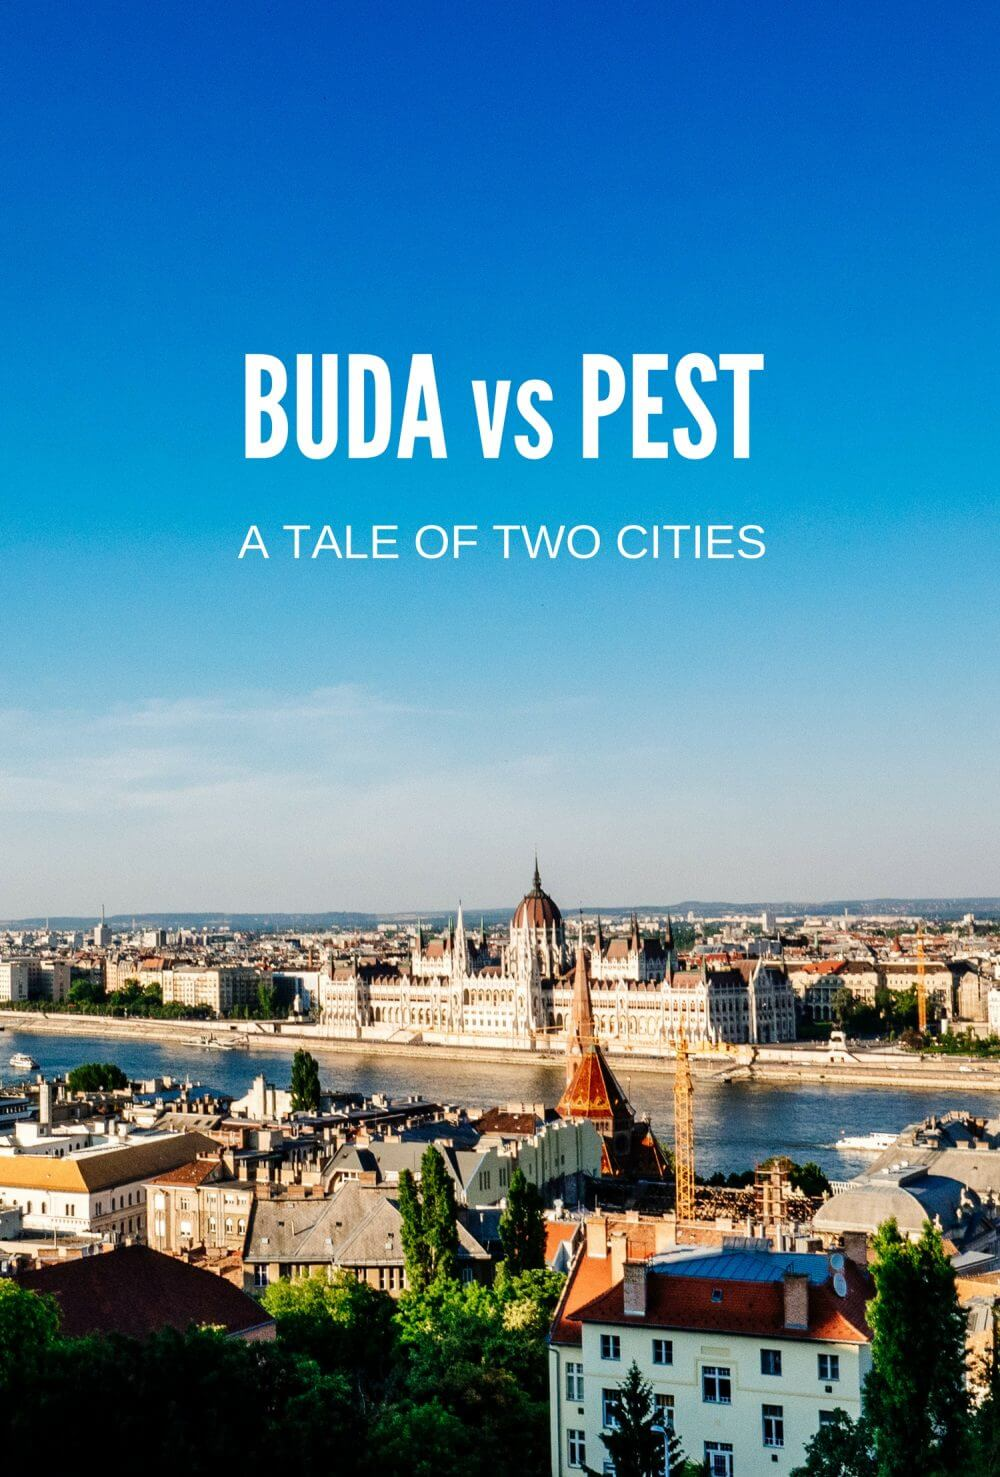 Buda vs Pest: A Tale of Two Cities